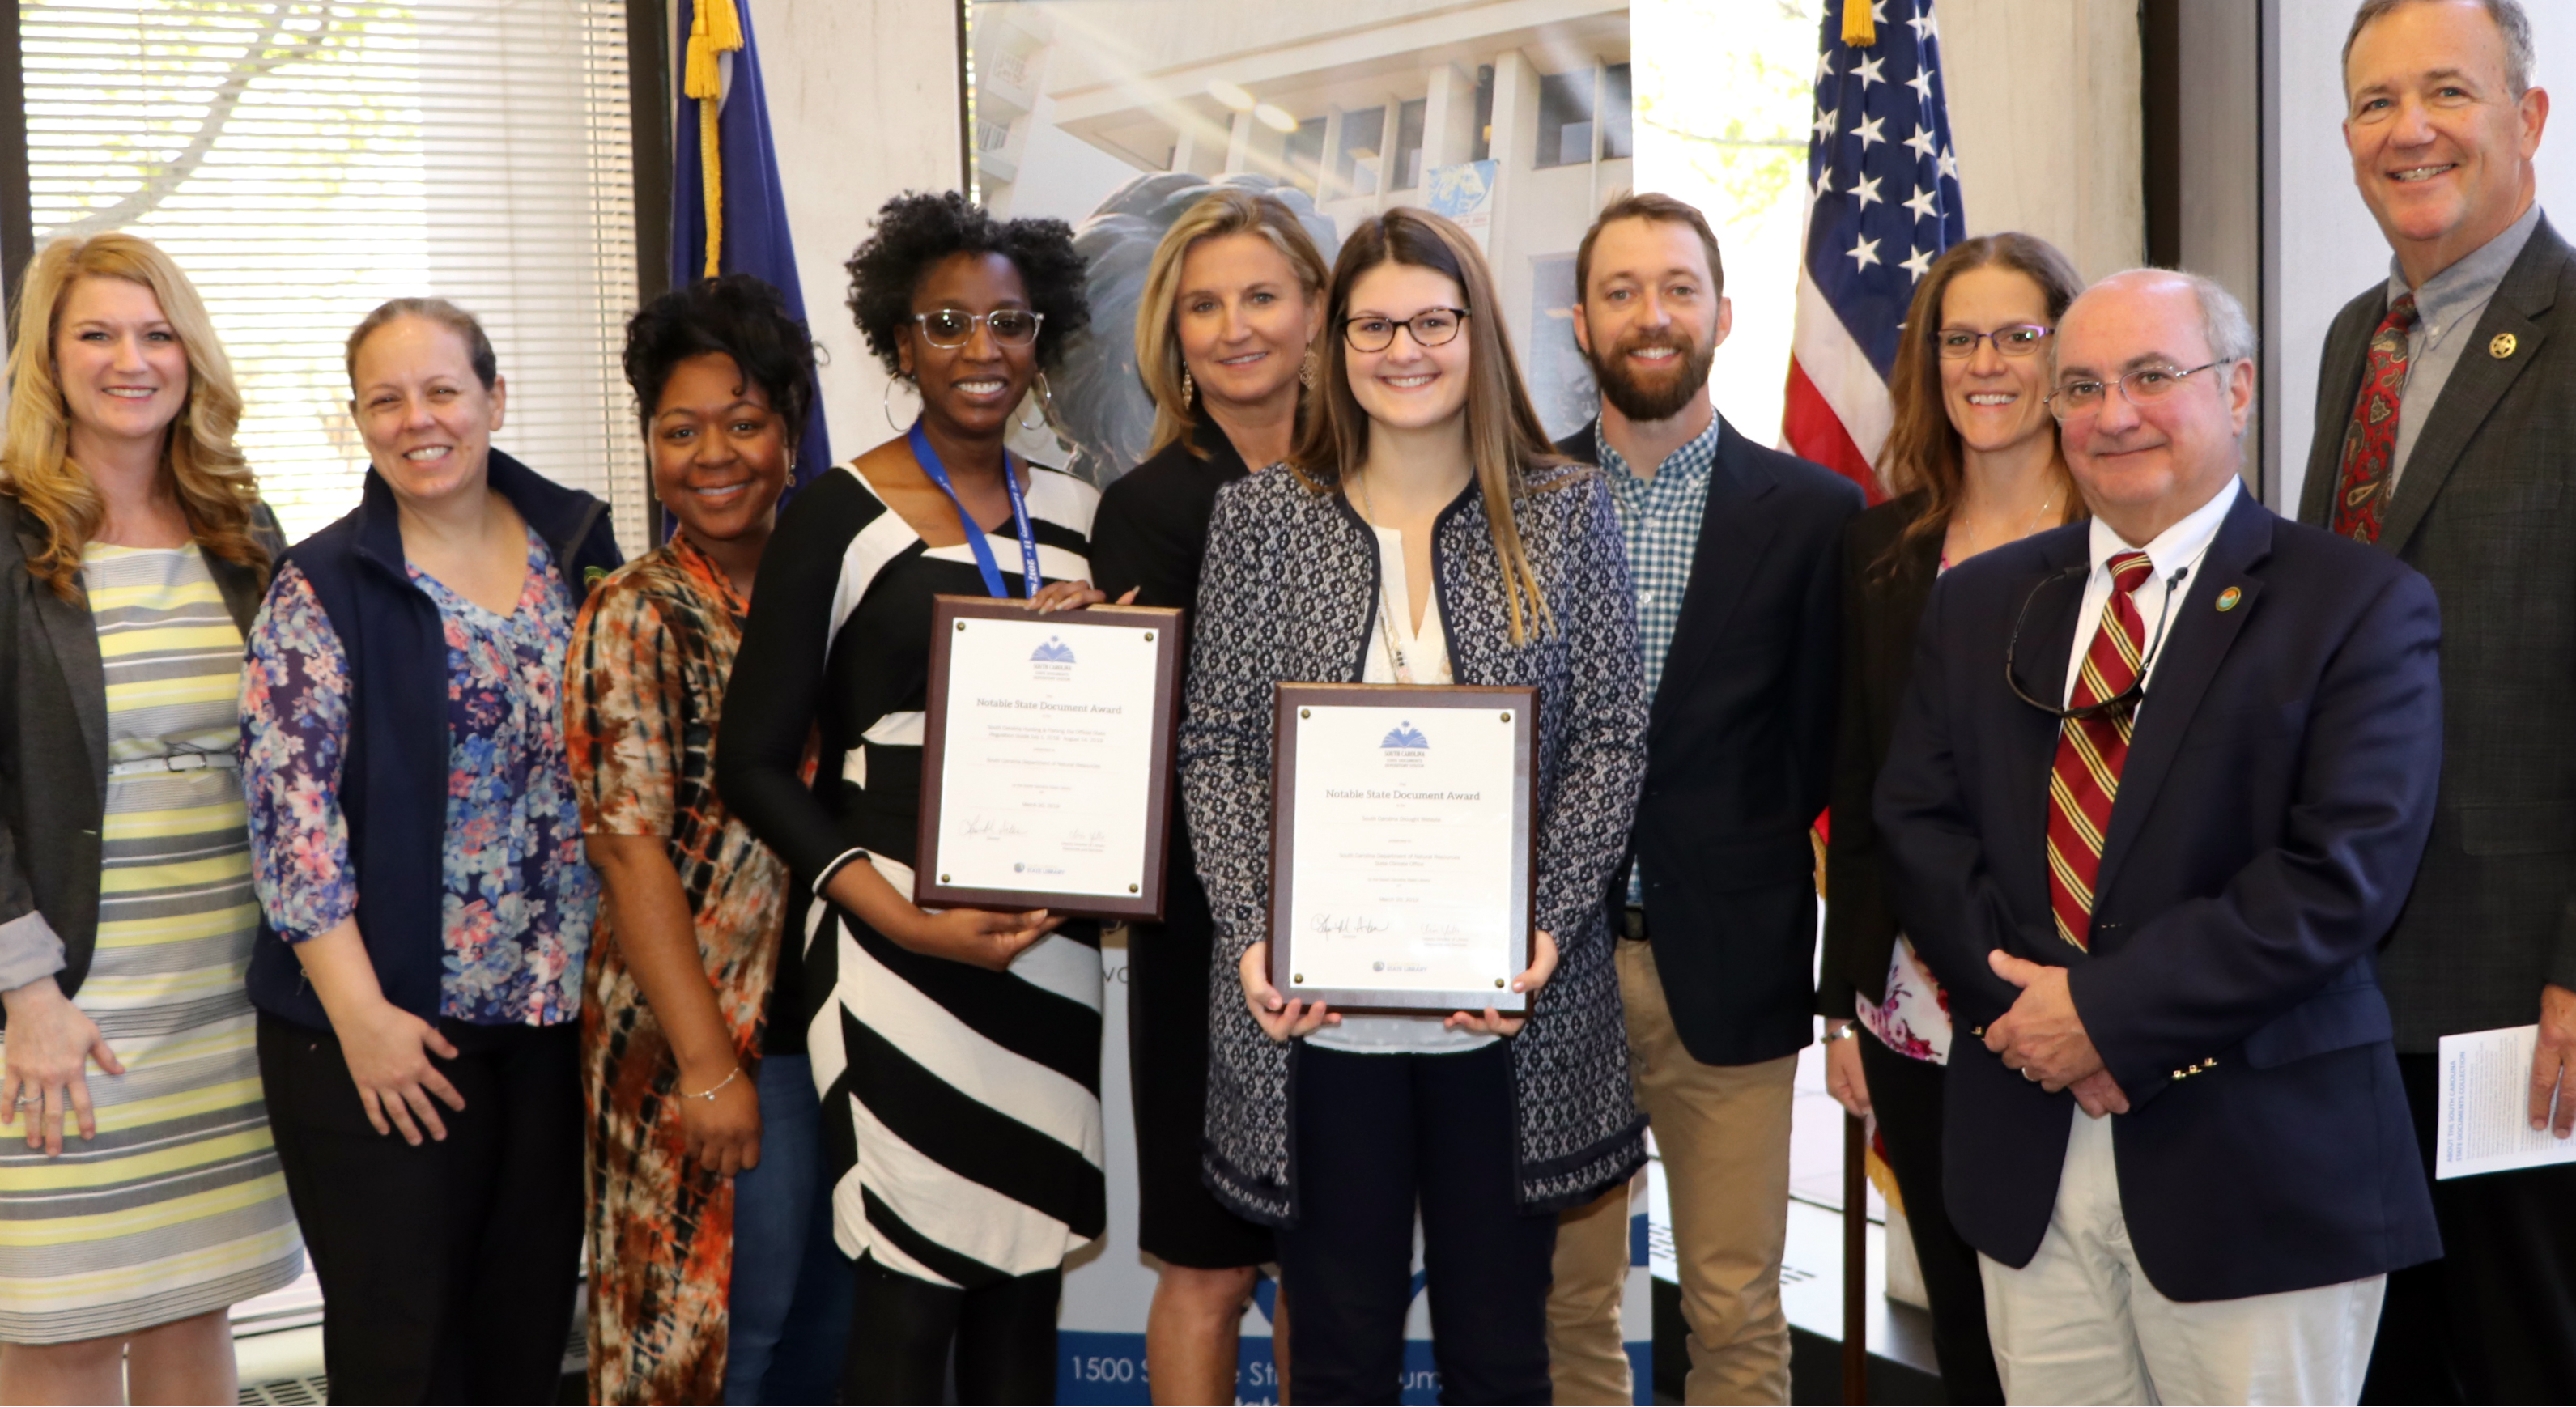 photo of Notable State Document Award winners from 2019